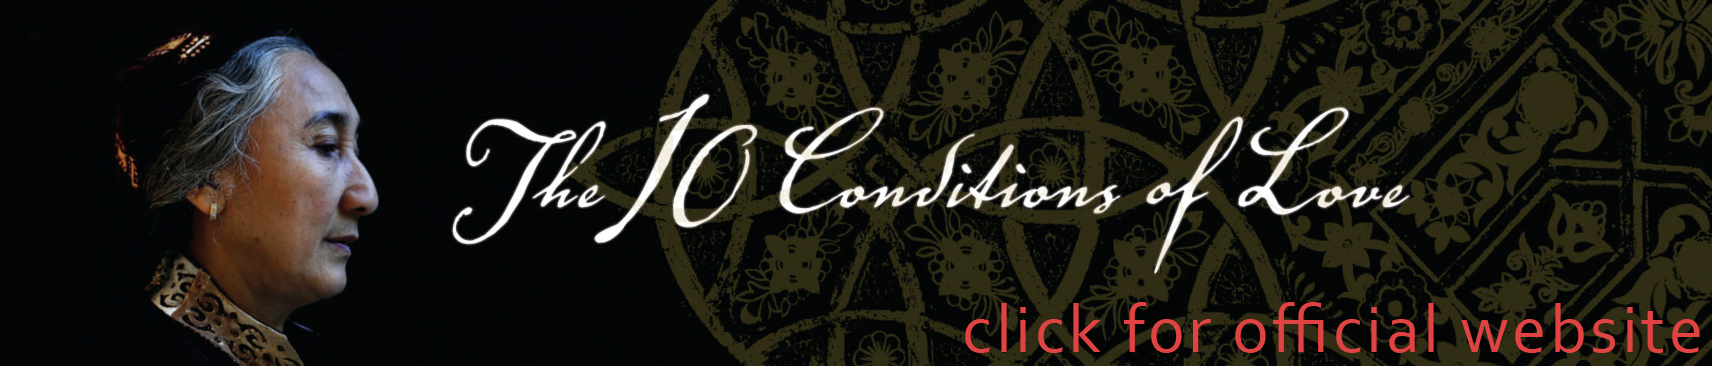 banner 10 conditions of love